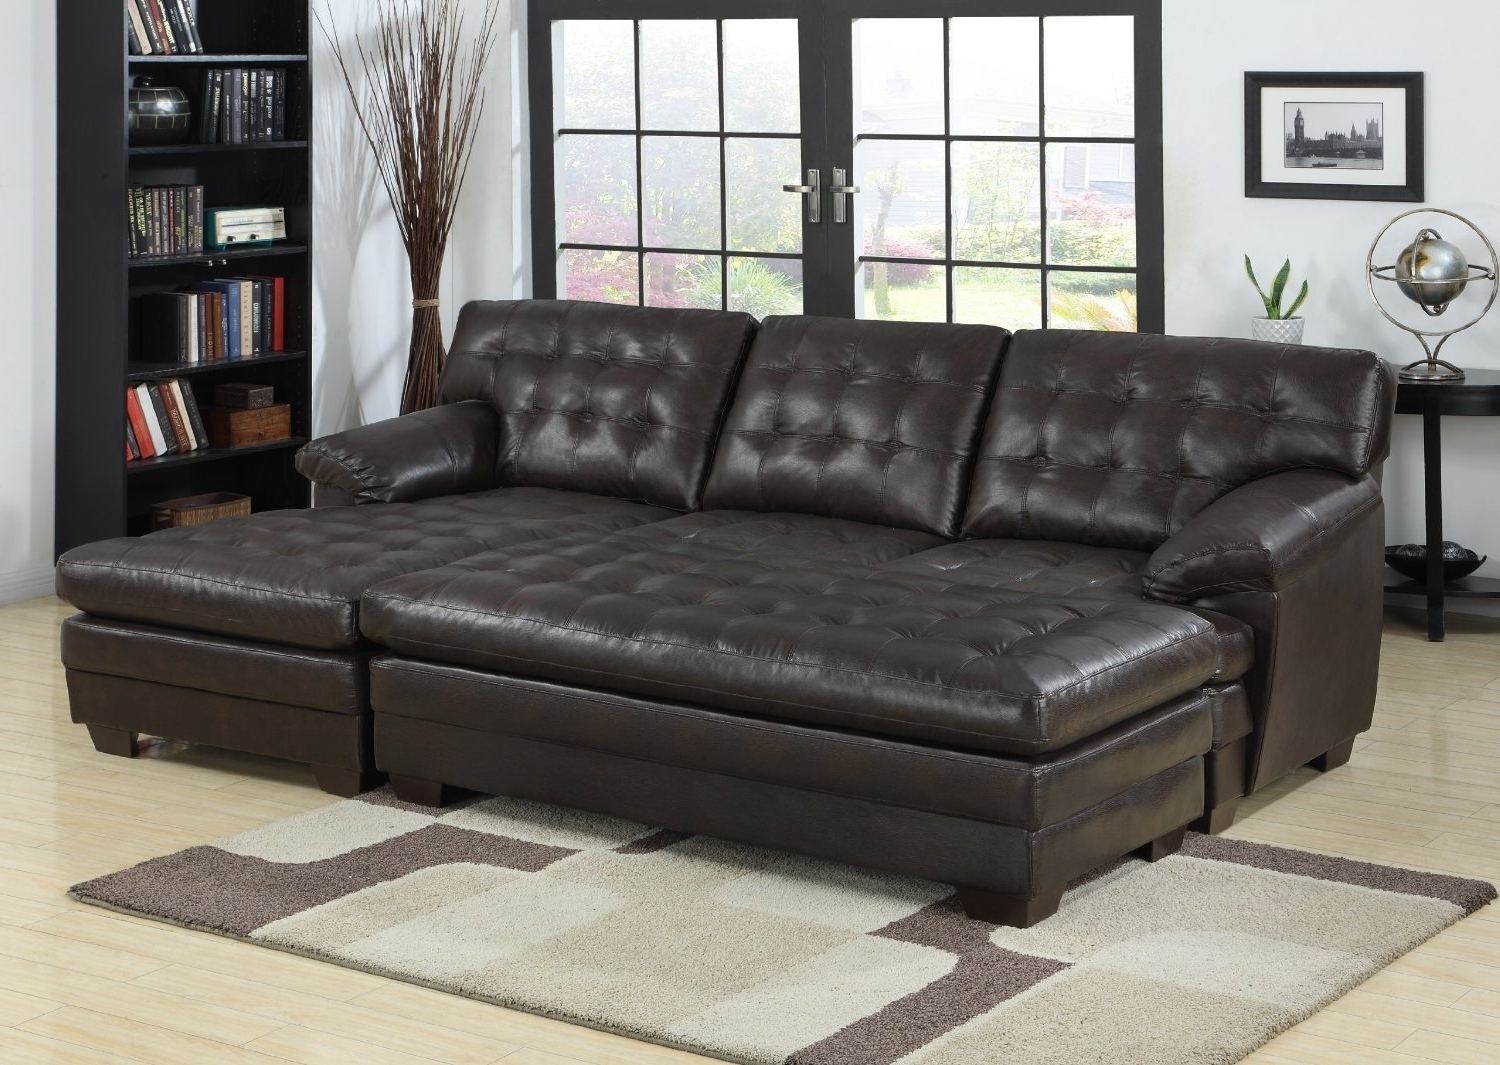 Large Chaises Throughout Famous Sectional Couch With Recliner Ikea Couch Bed Large Leather (View 5 of 15)